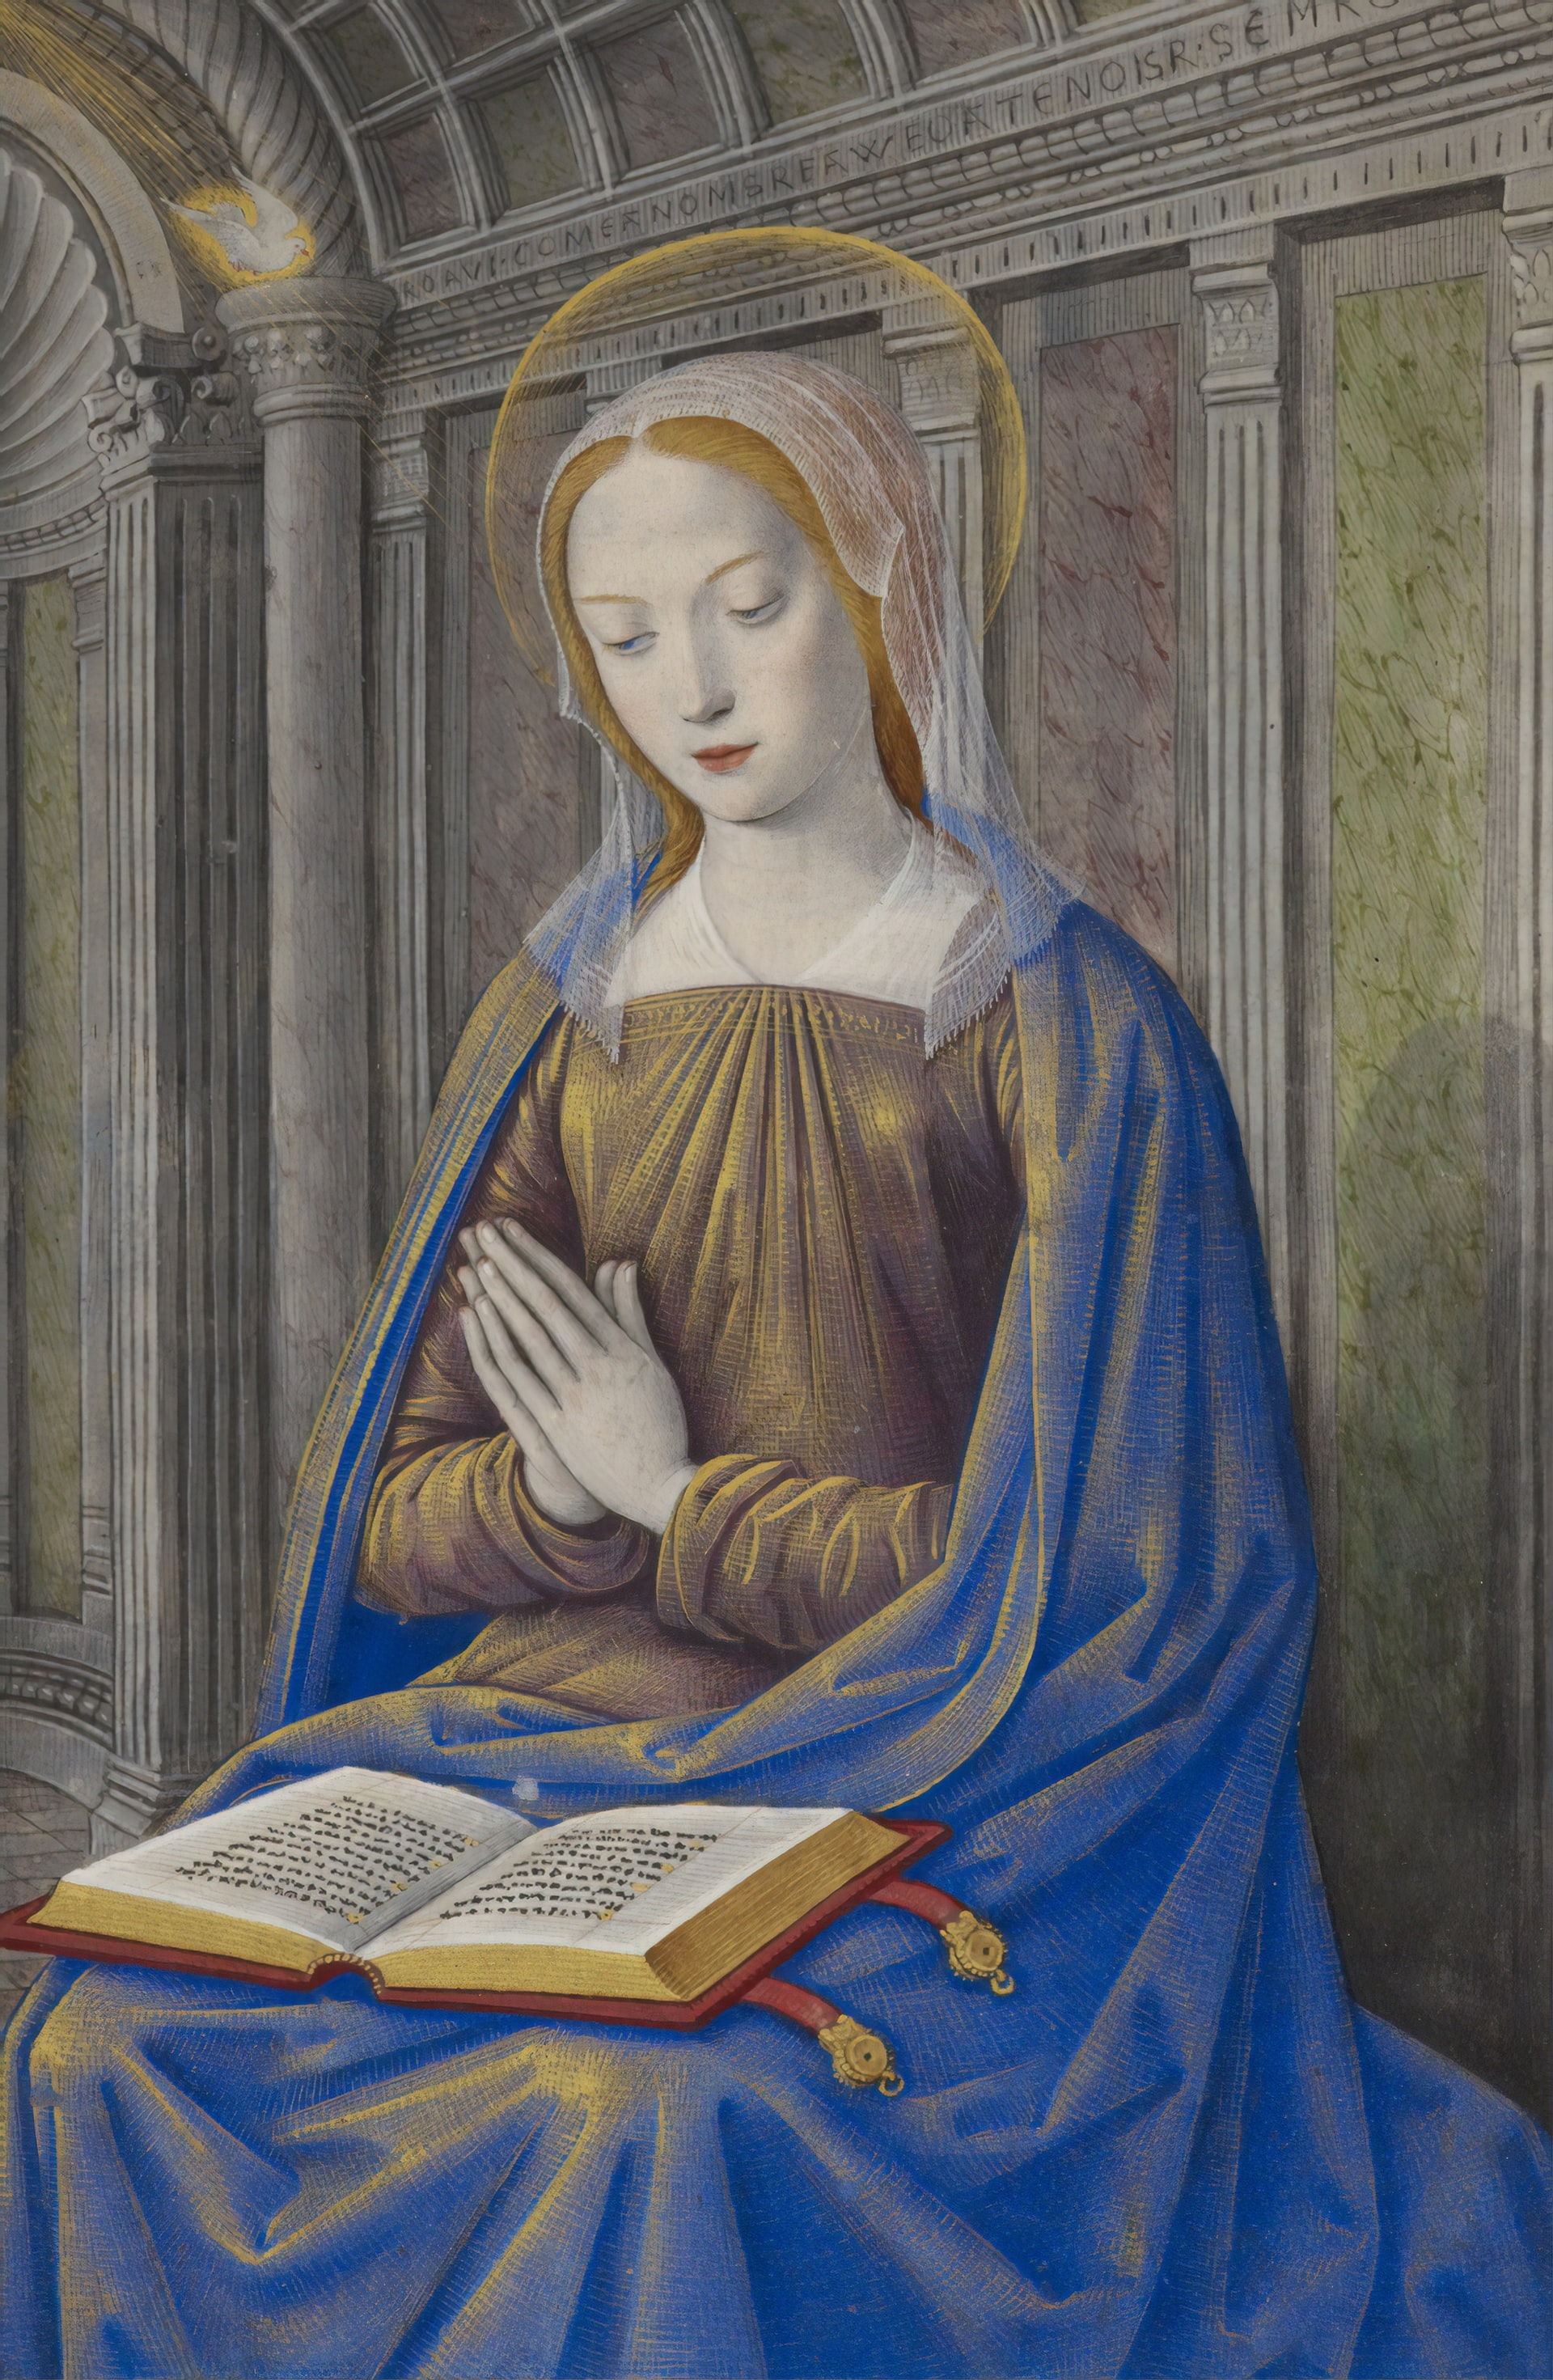 picture of woman praying with bible www.atozmomm.com